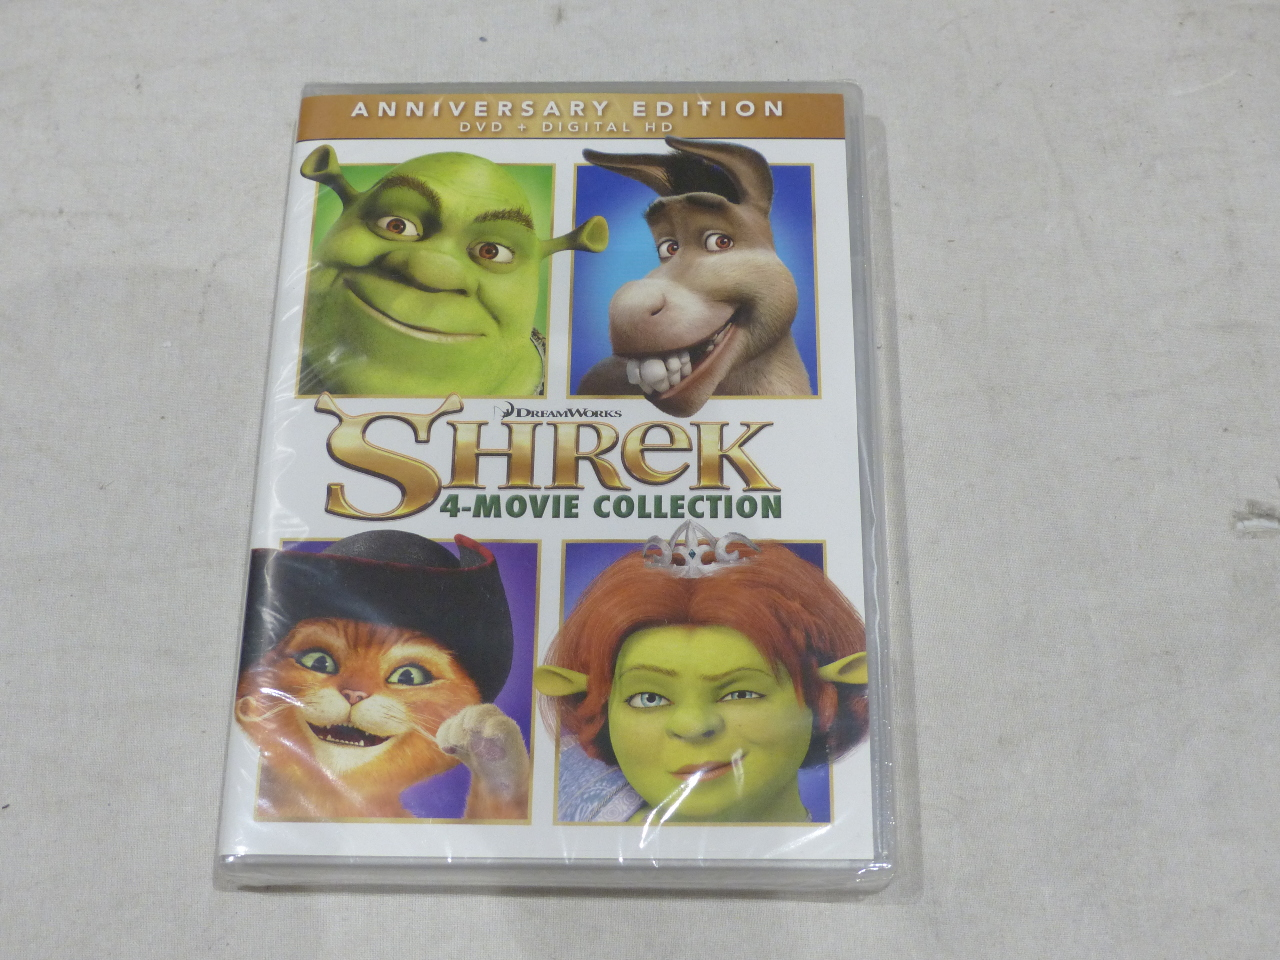 Shrek 4-movie Collection Anniversary Edition DVD Digital HD